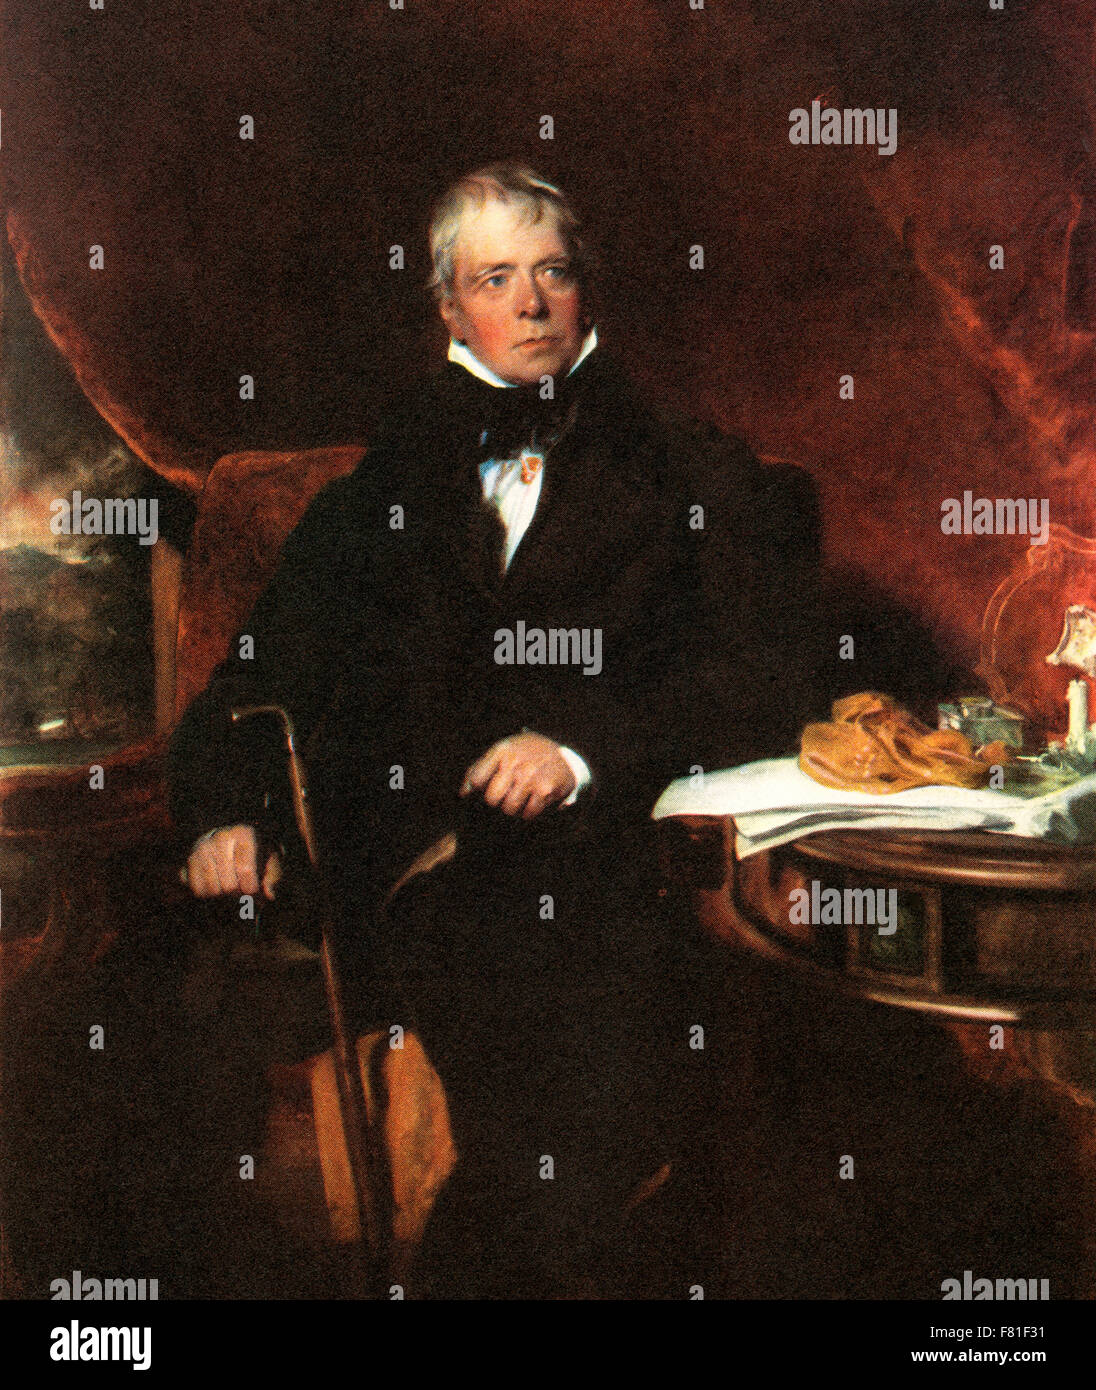 Sir Walter Scott, 1st Baronet, 1771 – 1832.  Scottish historical novelist, playwright and poet. After the painting - Stock Image